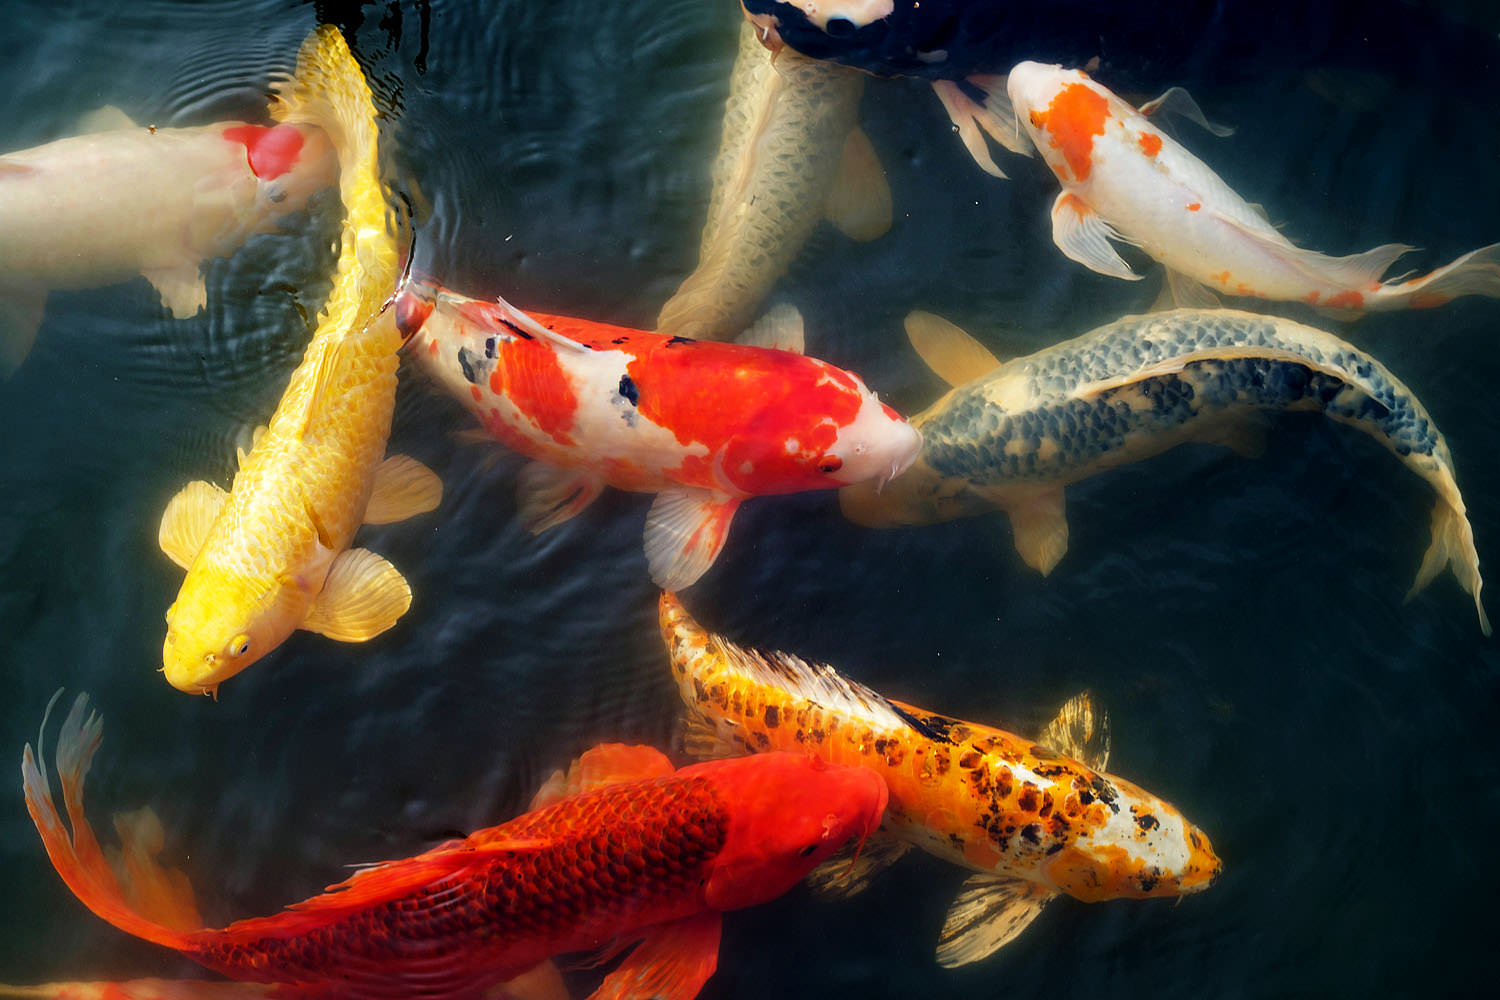 Koi fish at Meadowlark Gardens